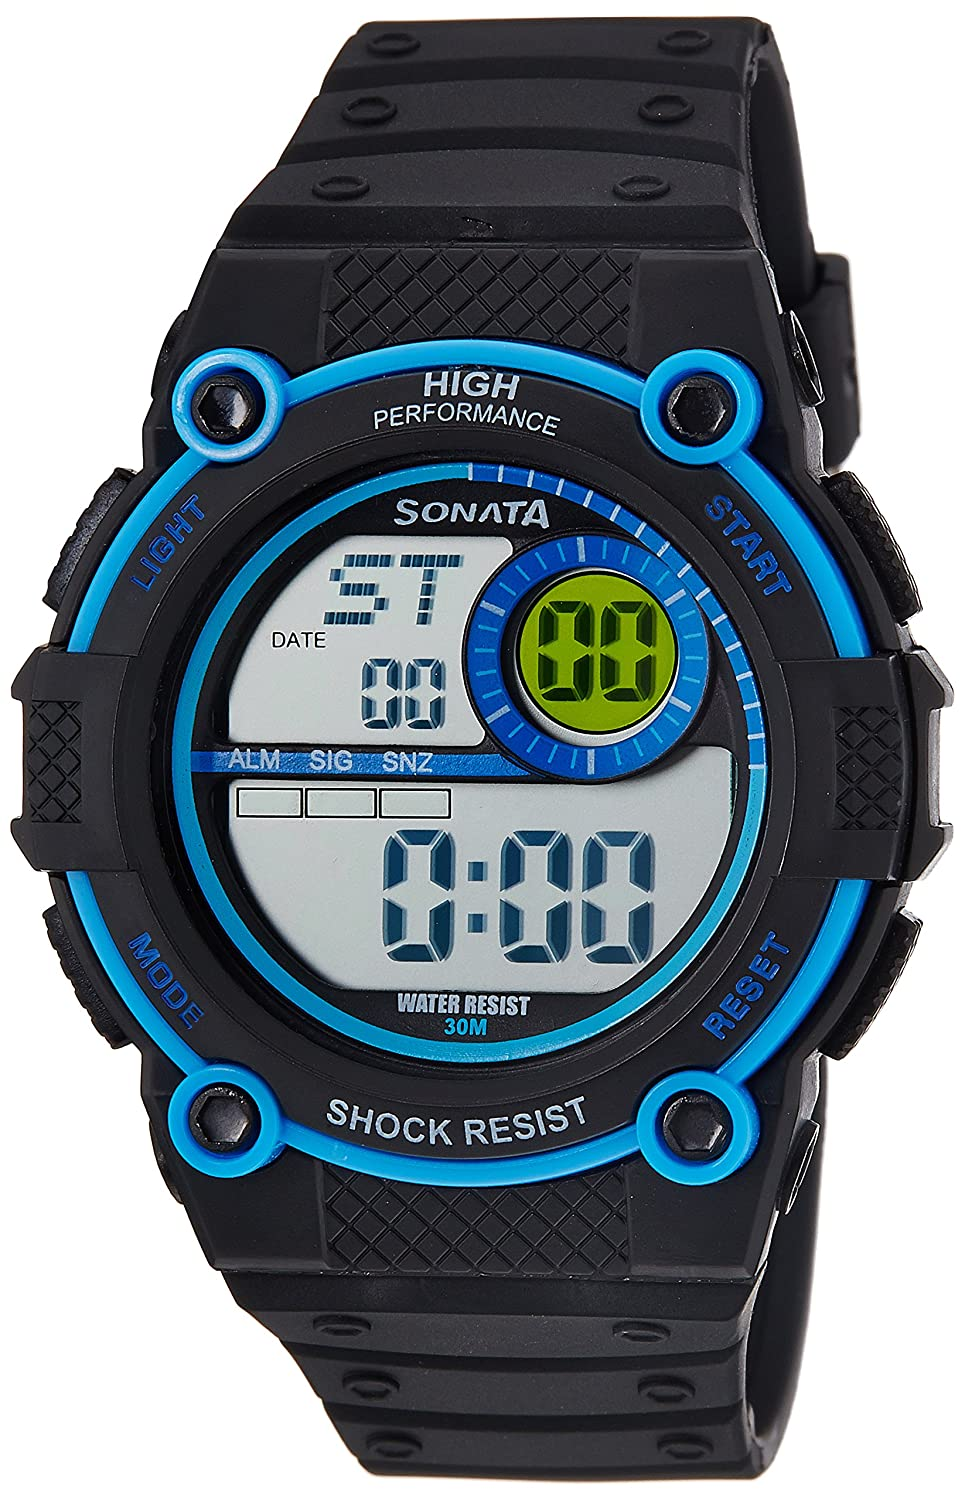 Sonata Best Digital Watches under 2000 that are Worth Buying in India